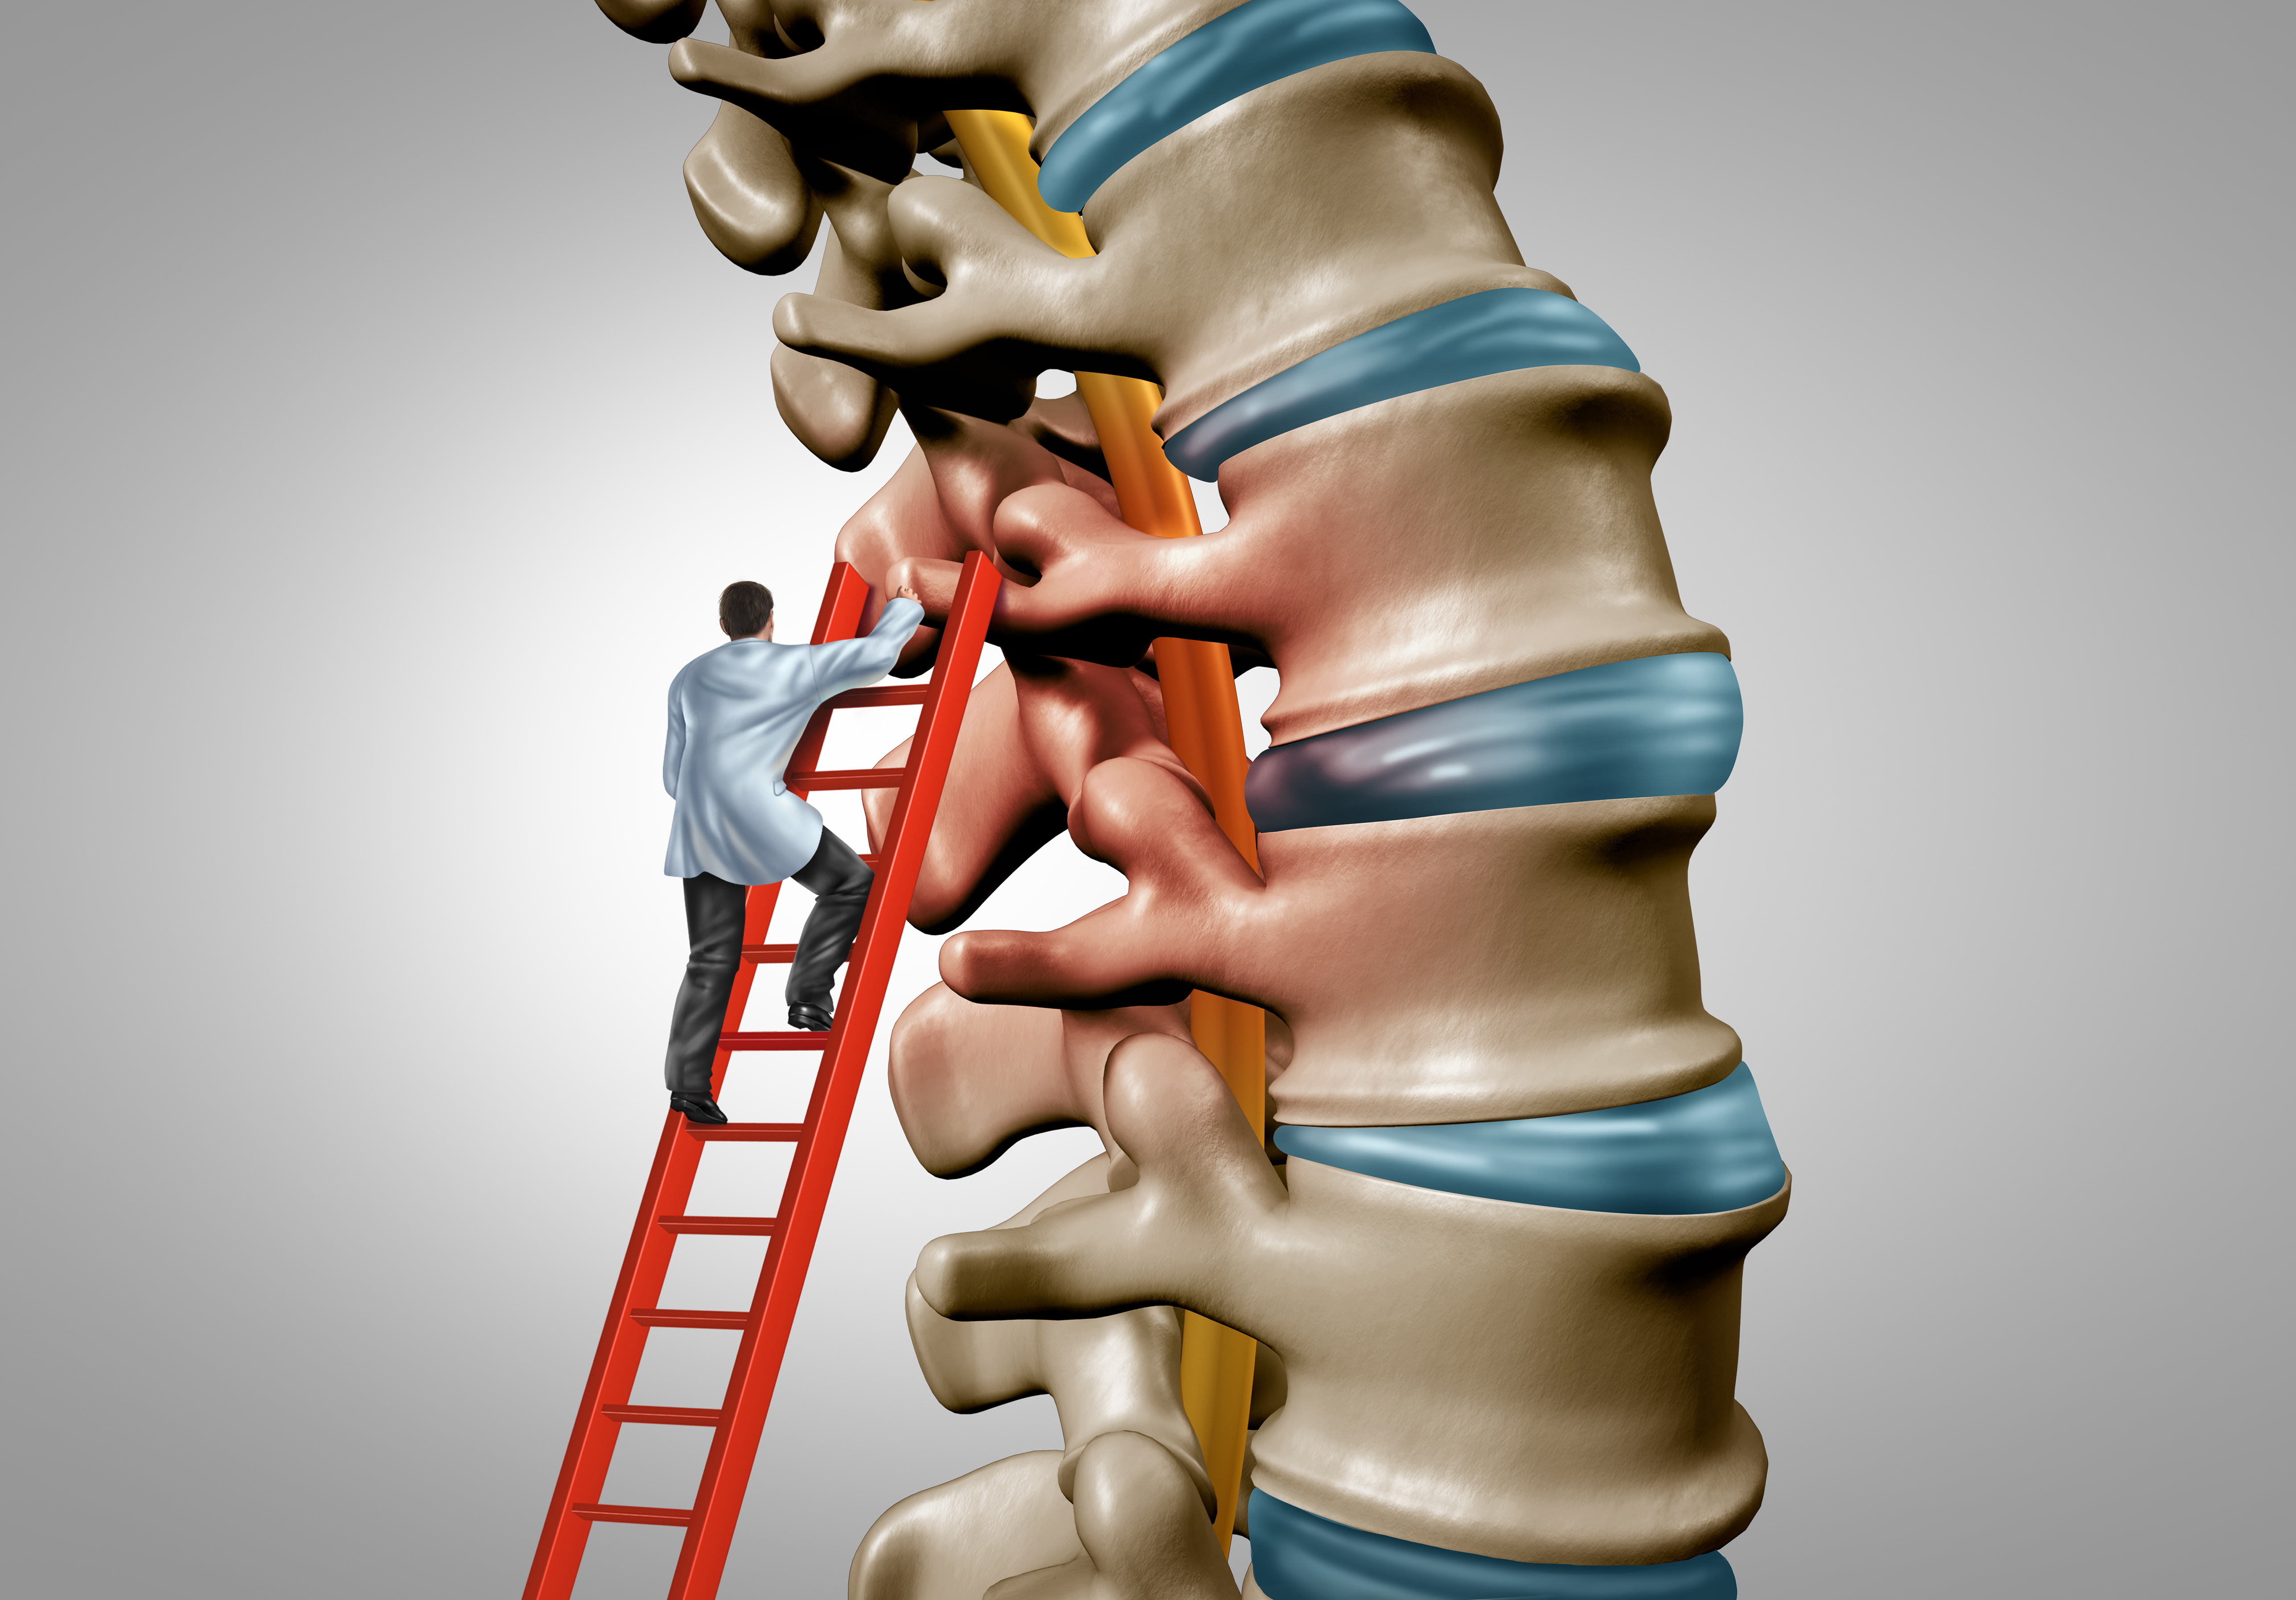 Canva - Spine Therapy